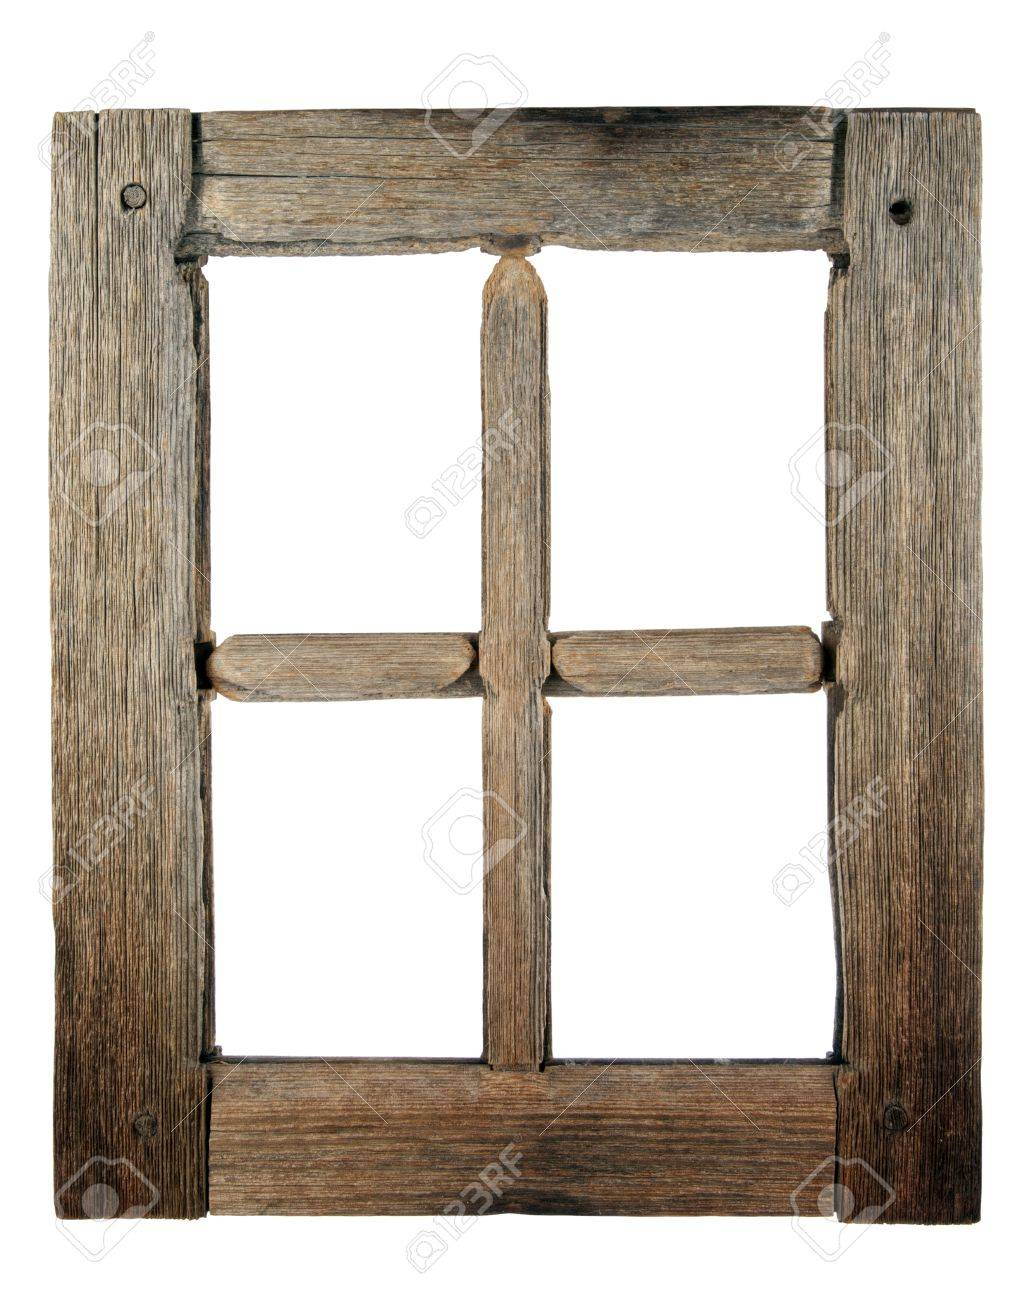 Stock Photo   Very Old Grunged Wooden Window Frame Isolated In White